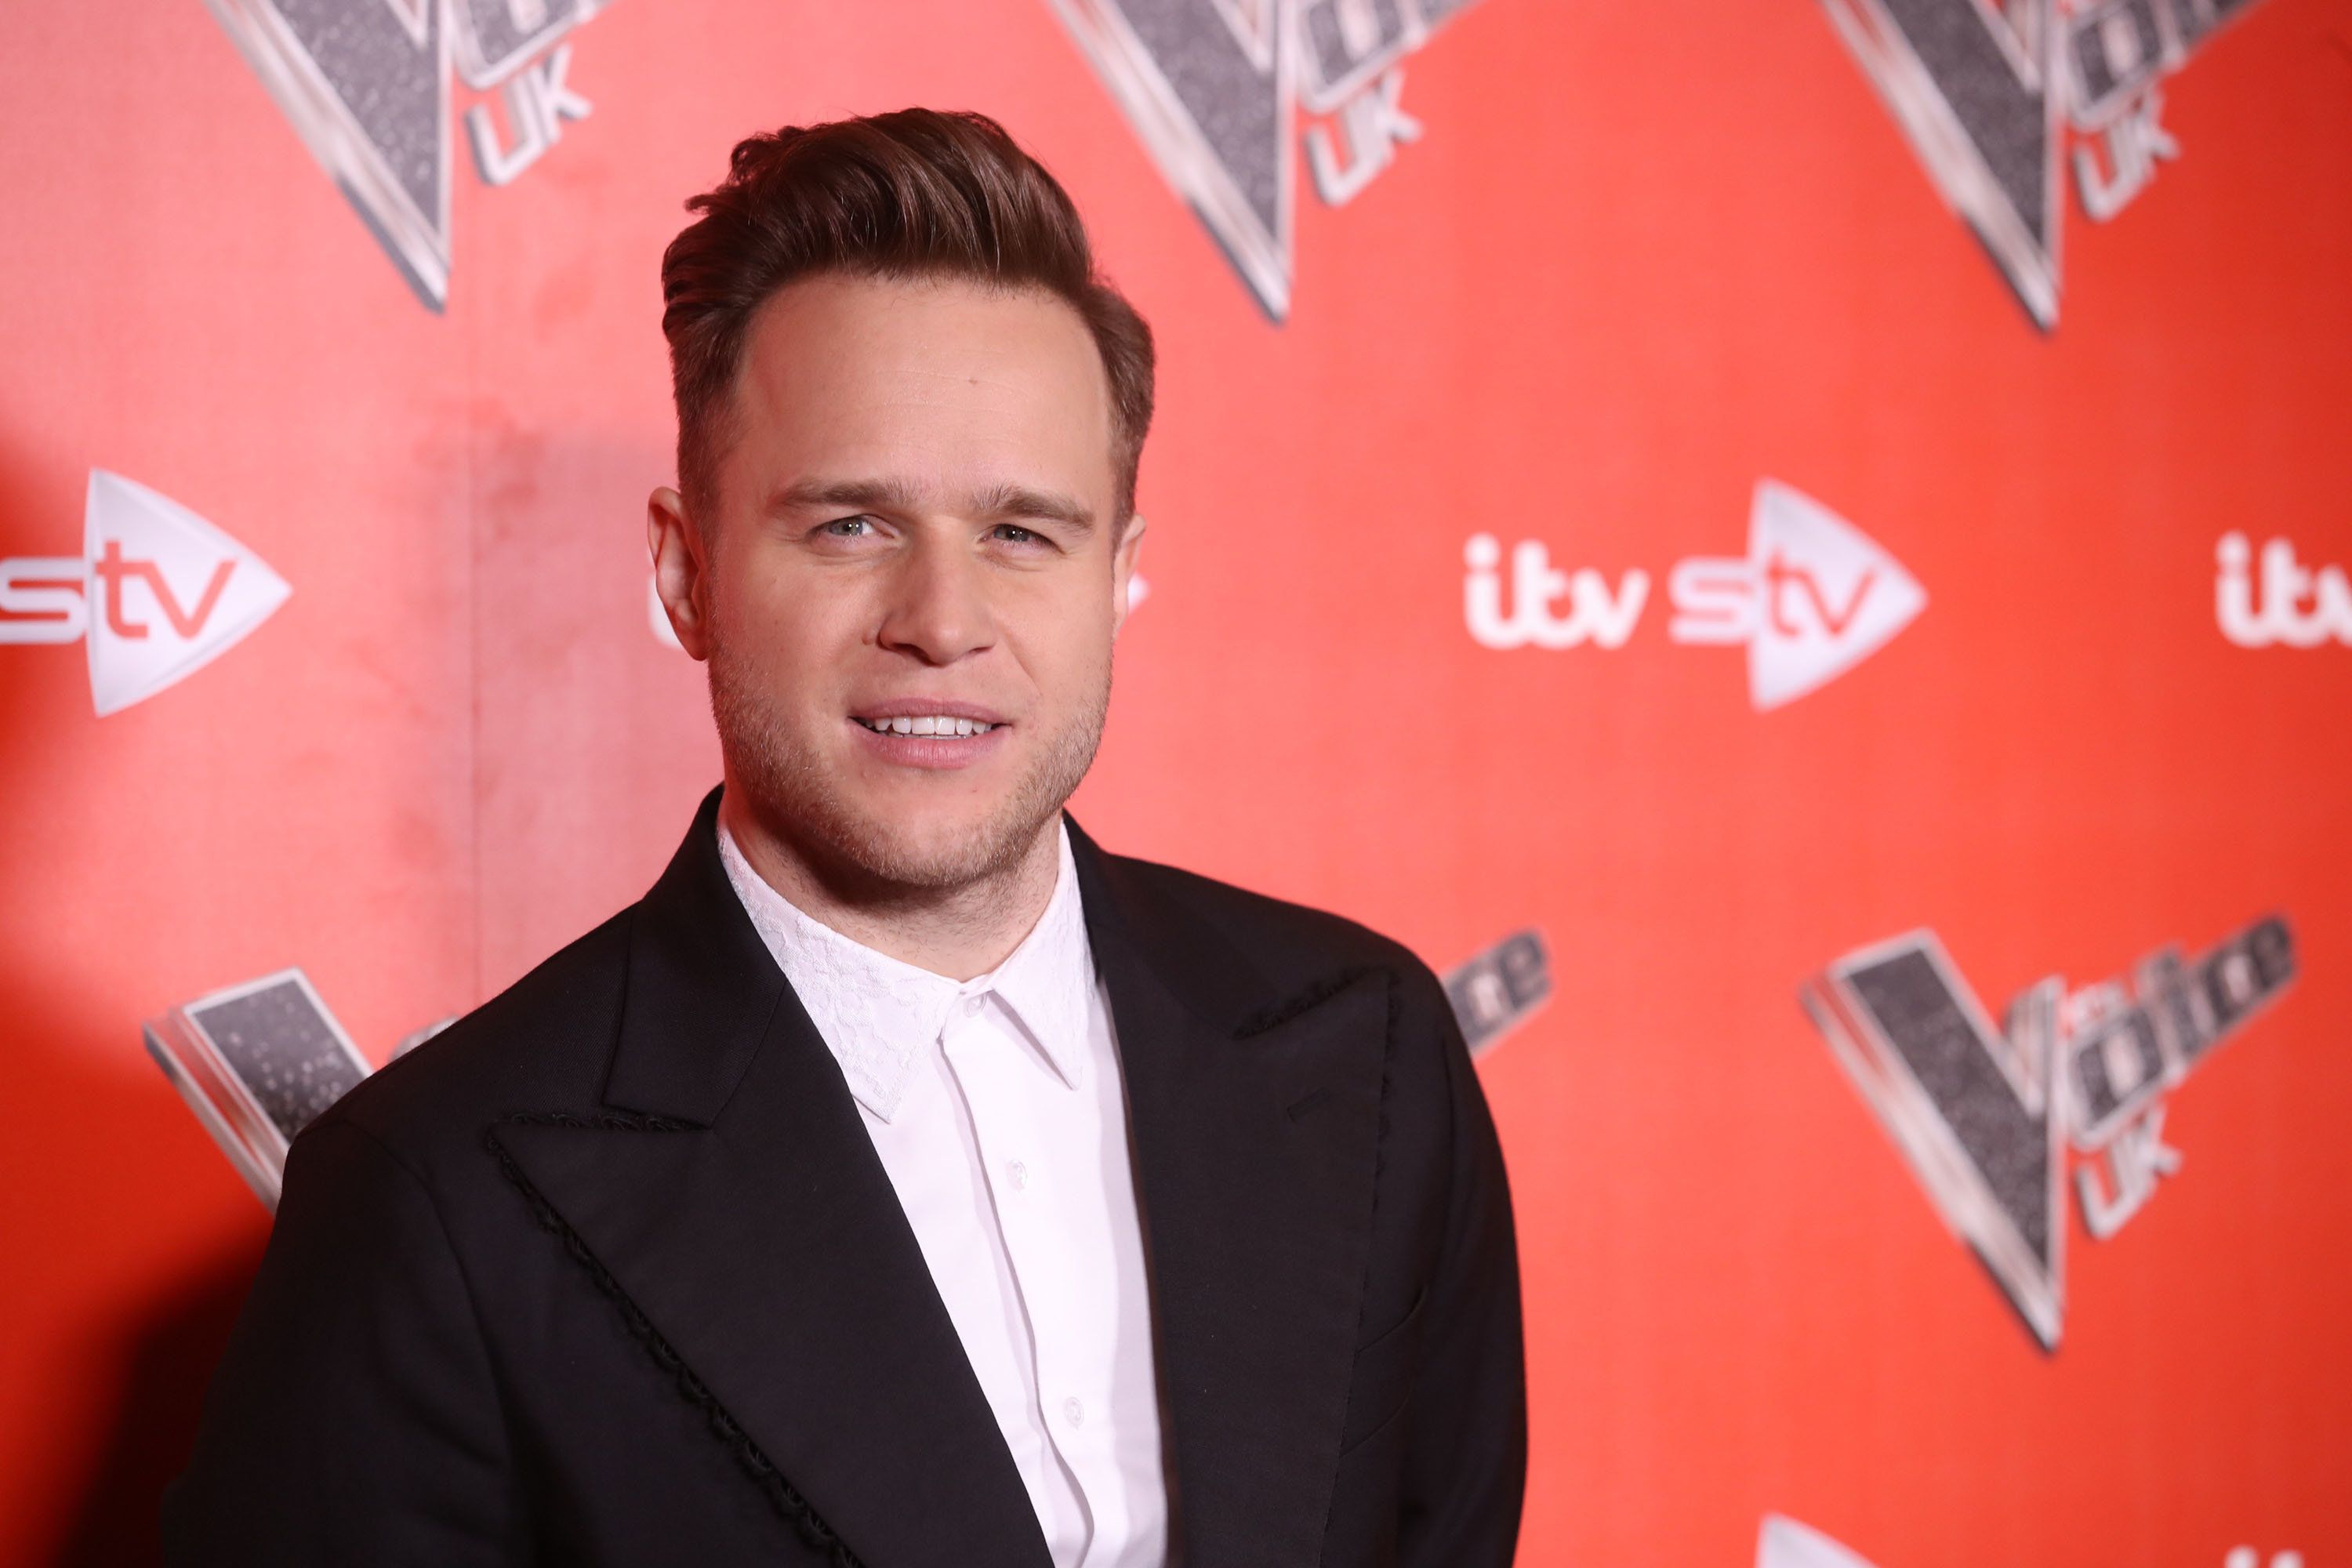 Olly Murs Throws Shade At 'X Factor', Hailing 'The Voice' As 'The Best Show He's Worked